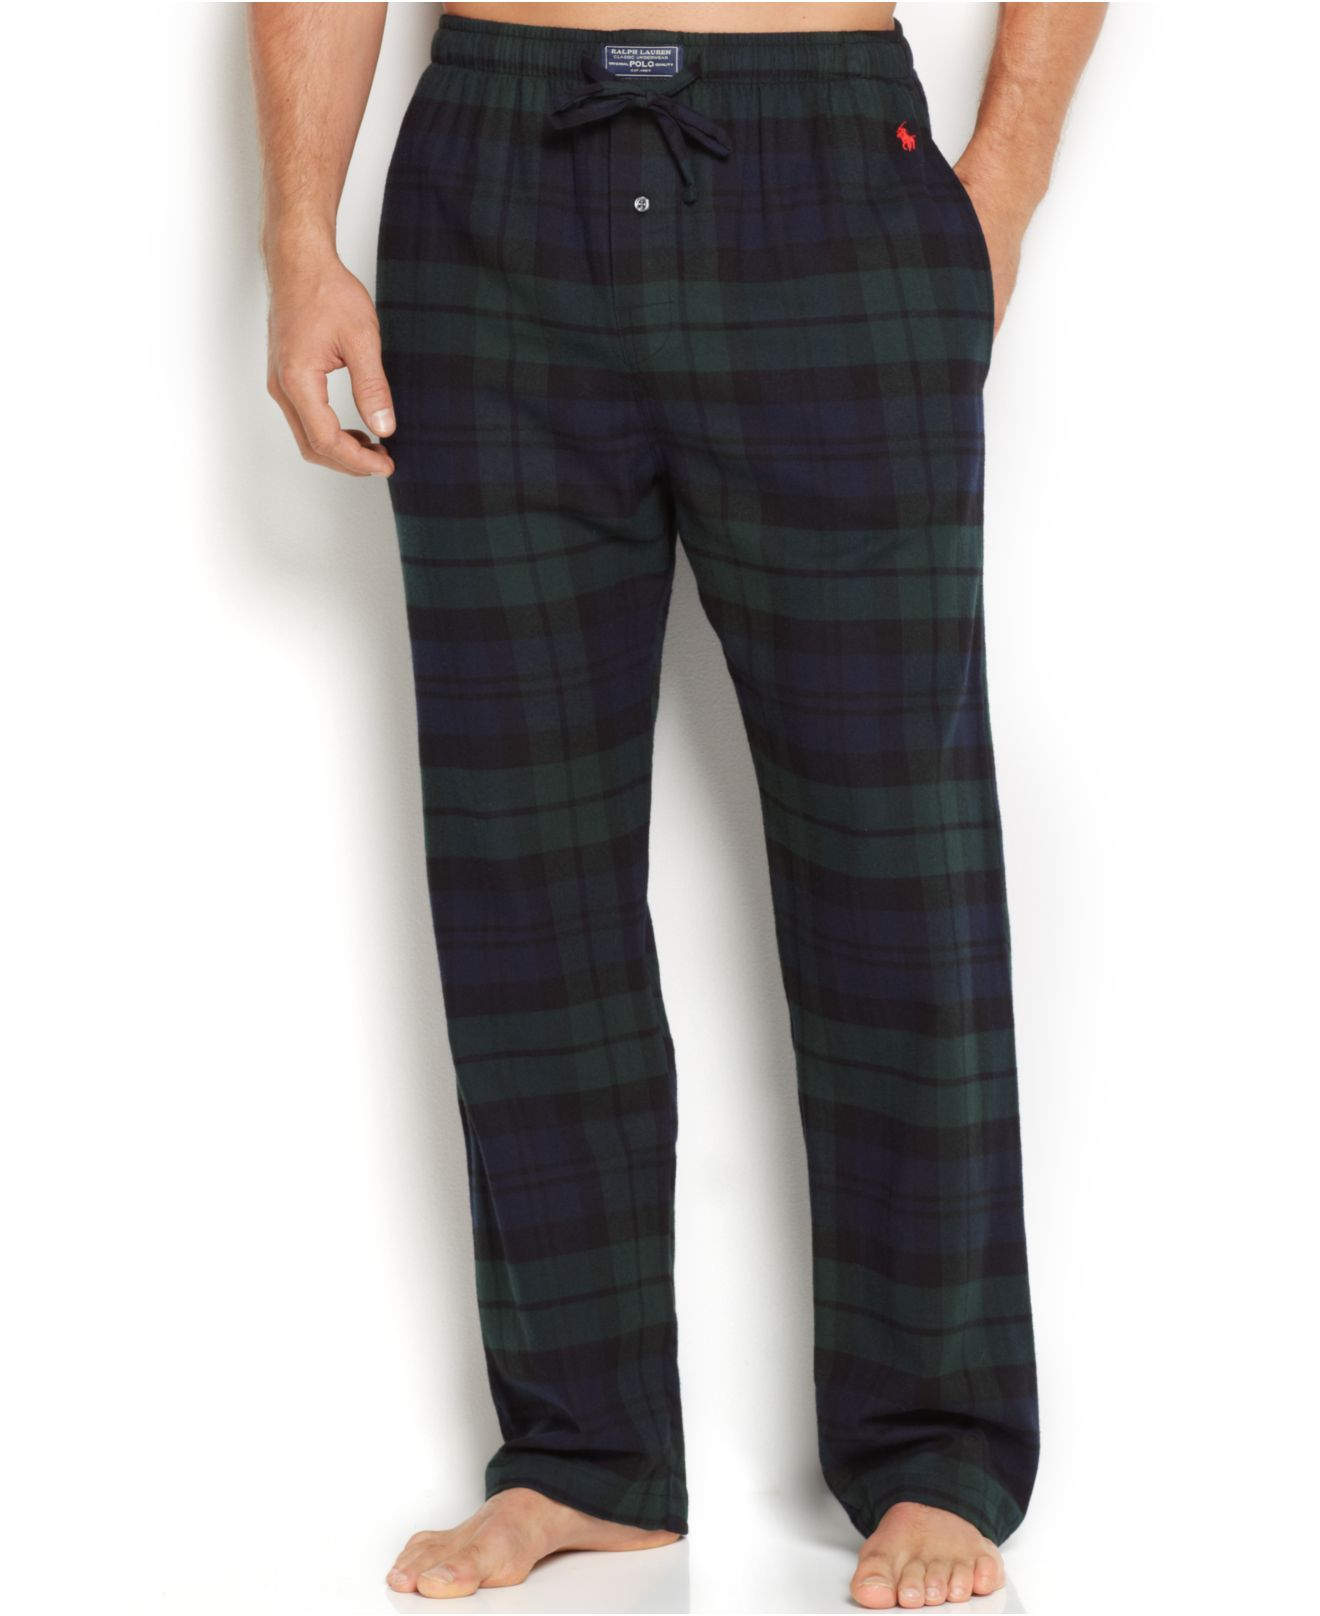 Pair with our Flannel Henley Shirt for the coziest flannel pajamas. Safety stitched, matching stripes the old fashioned way. Adult pants come with side pockets bar .